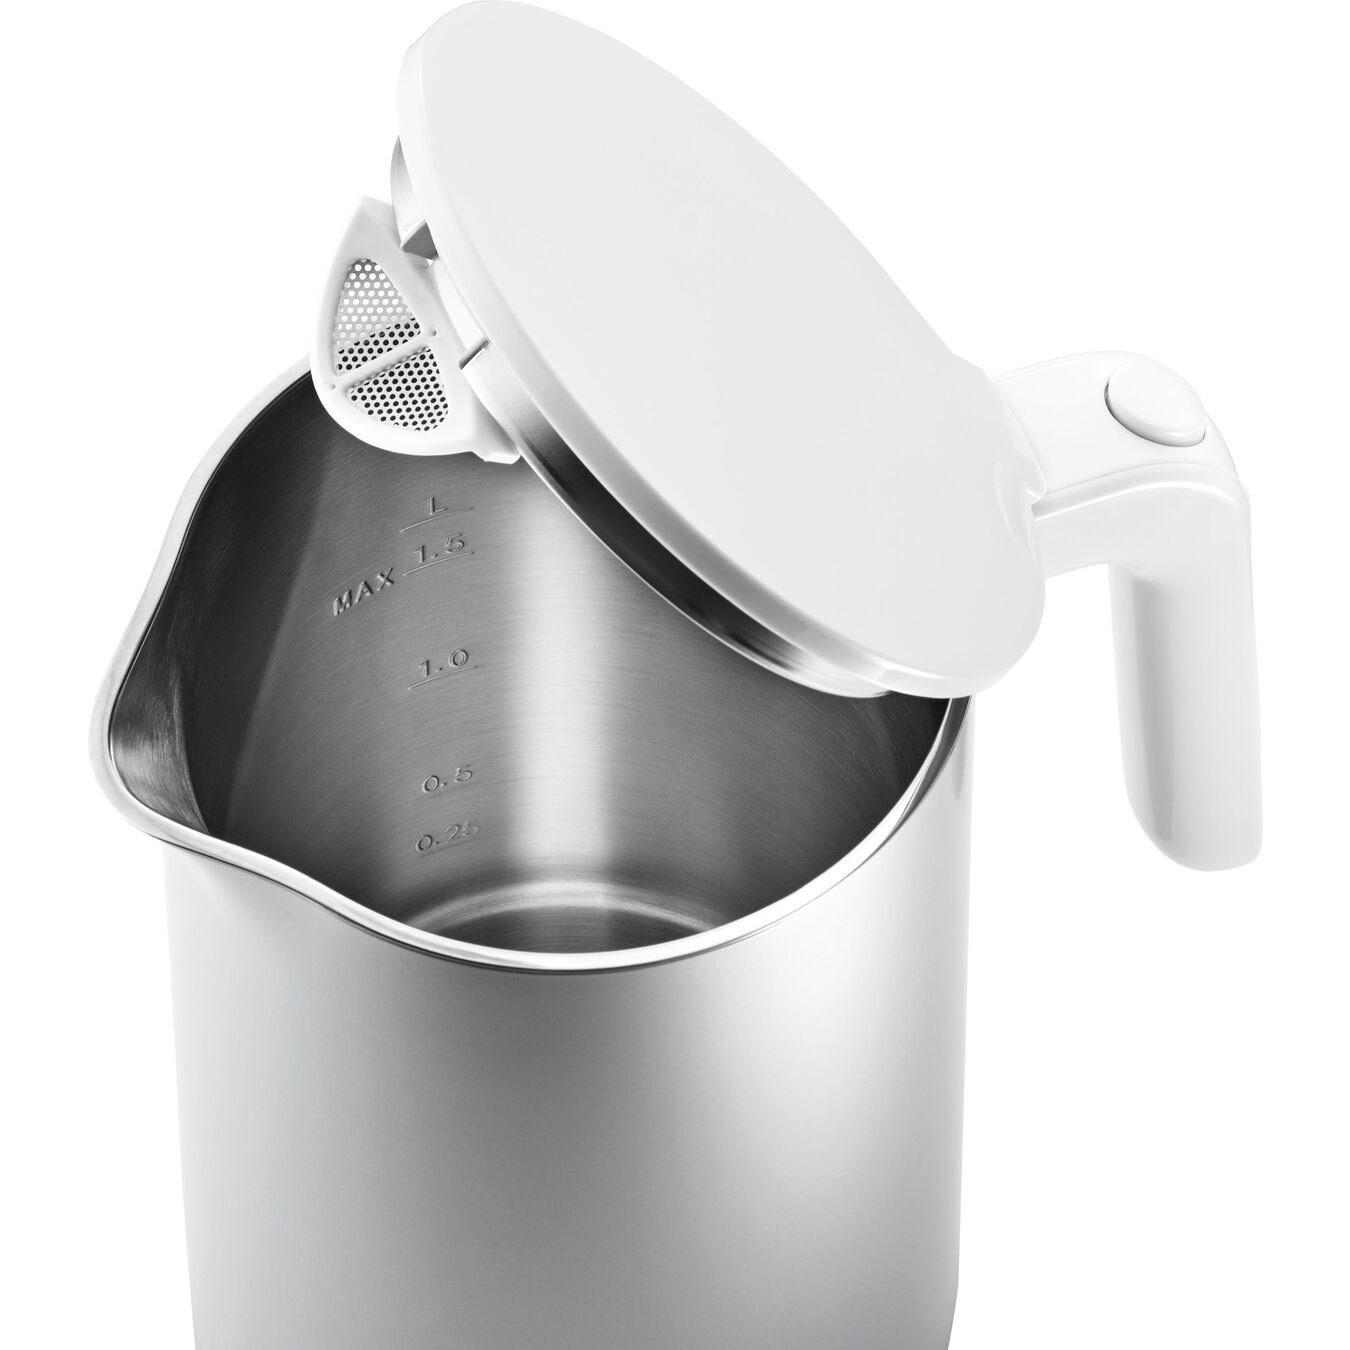 Cool Touch Kettle Pro,,large 4